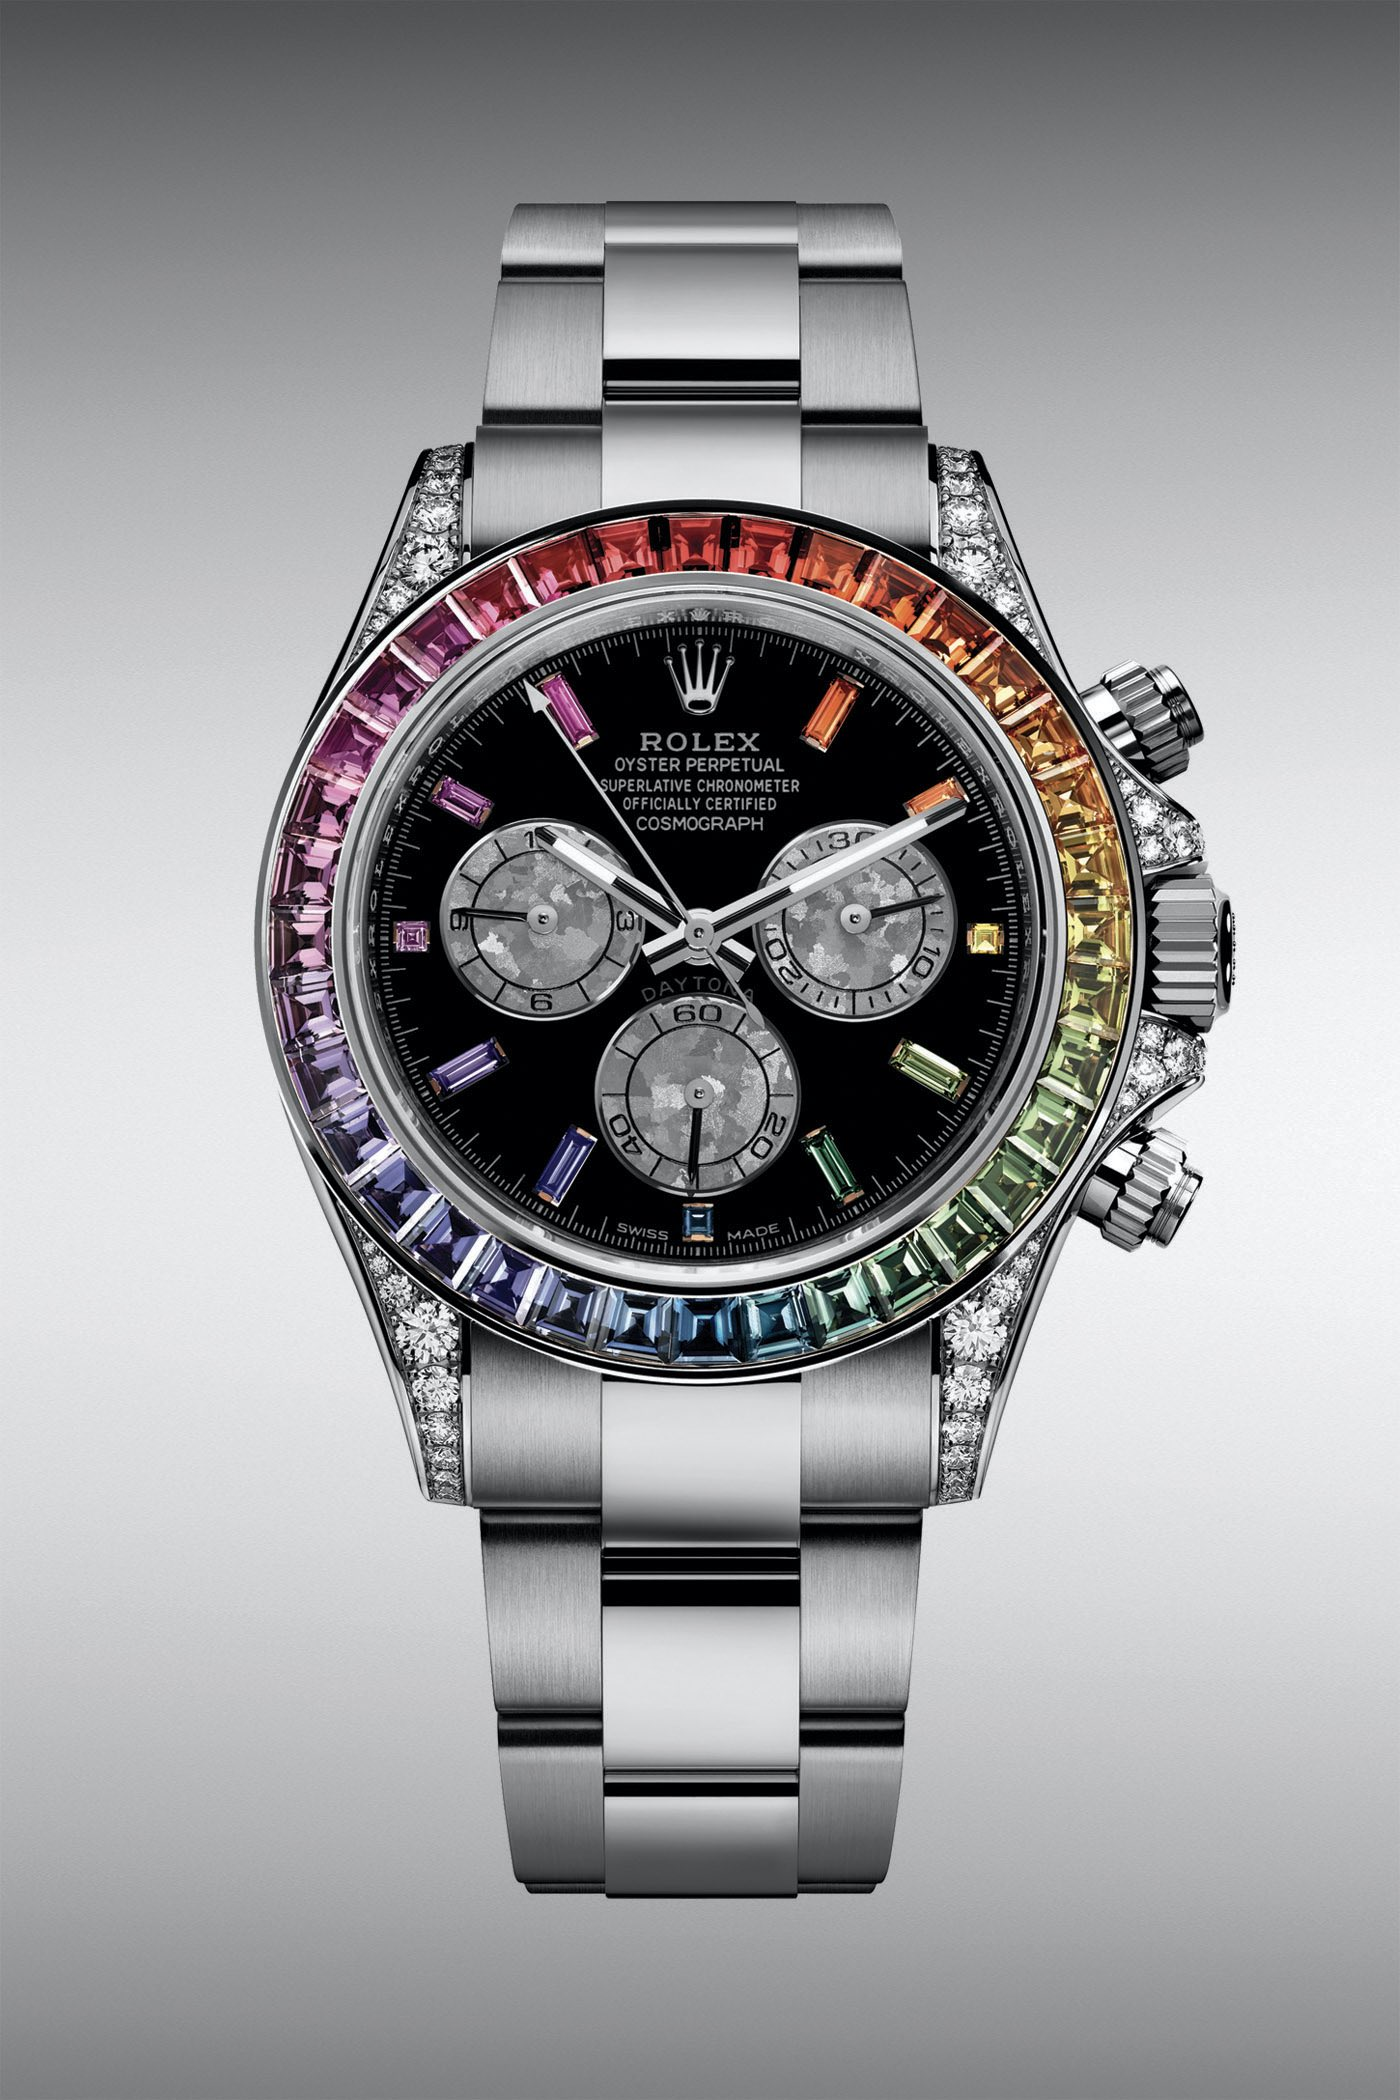 Rolex Daytona Rainbow While Gold 116599RBOW - Rolex Baselworld 2020 - Rolex 2020 Predictions